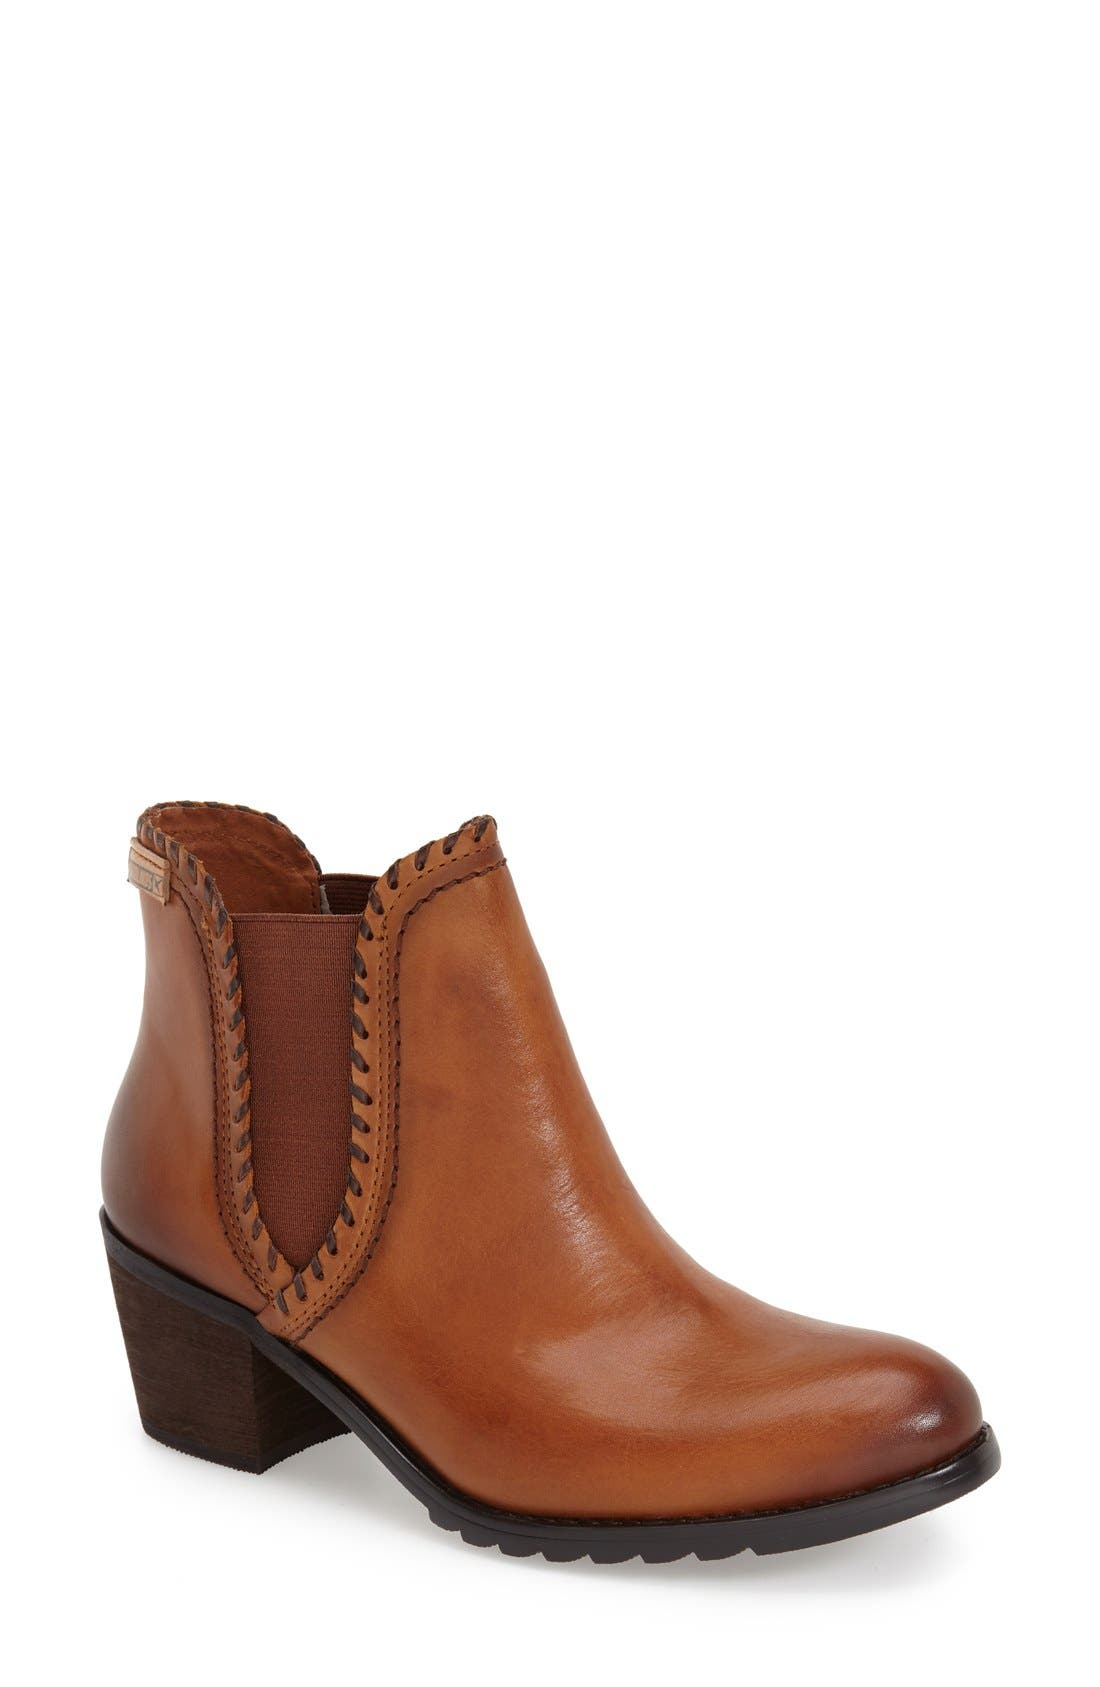 'Andorra' Water Resistant Bootie,                         Main,                         color, 200